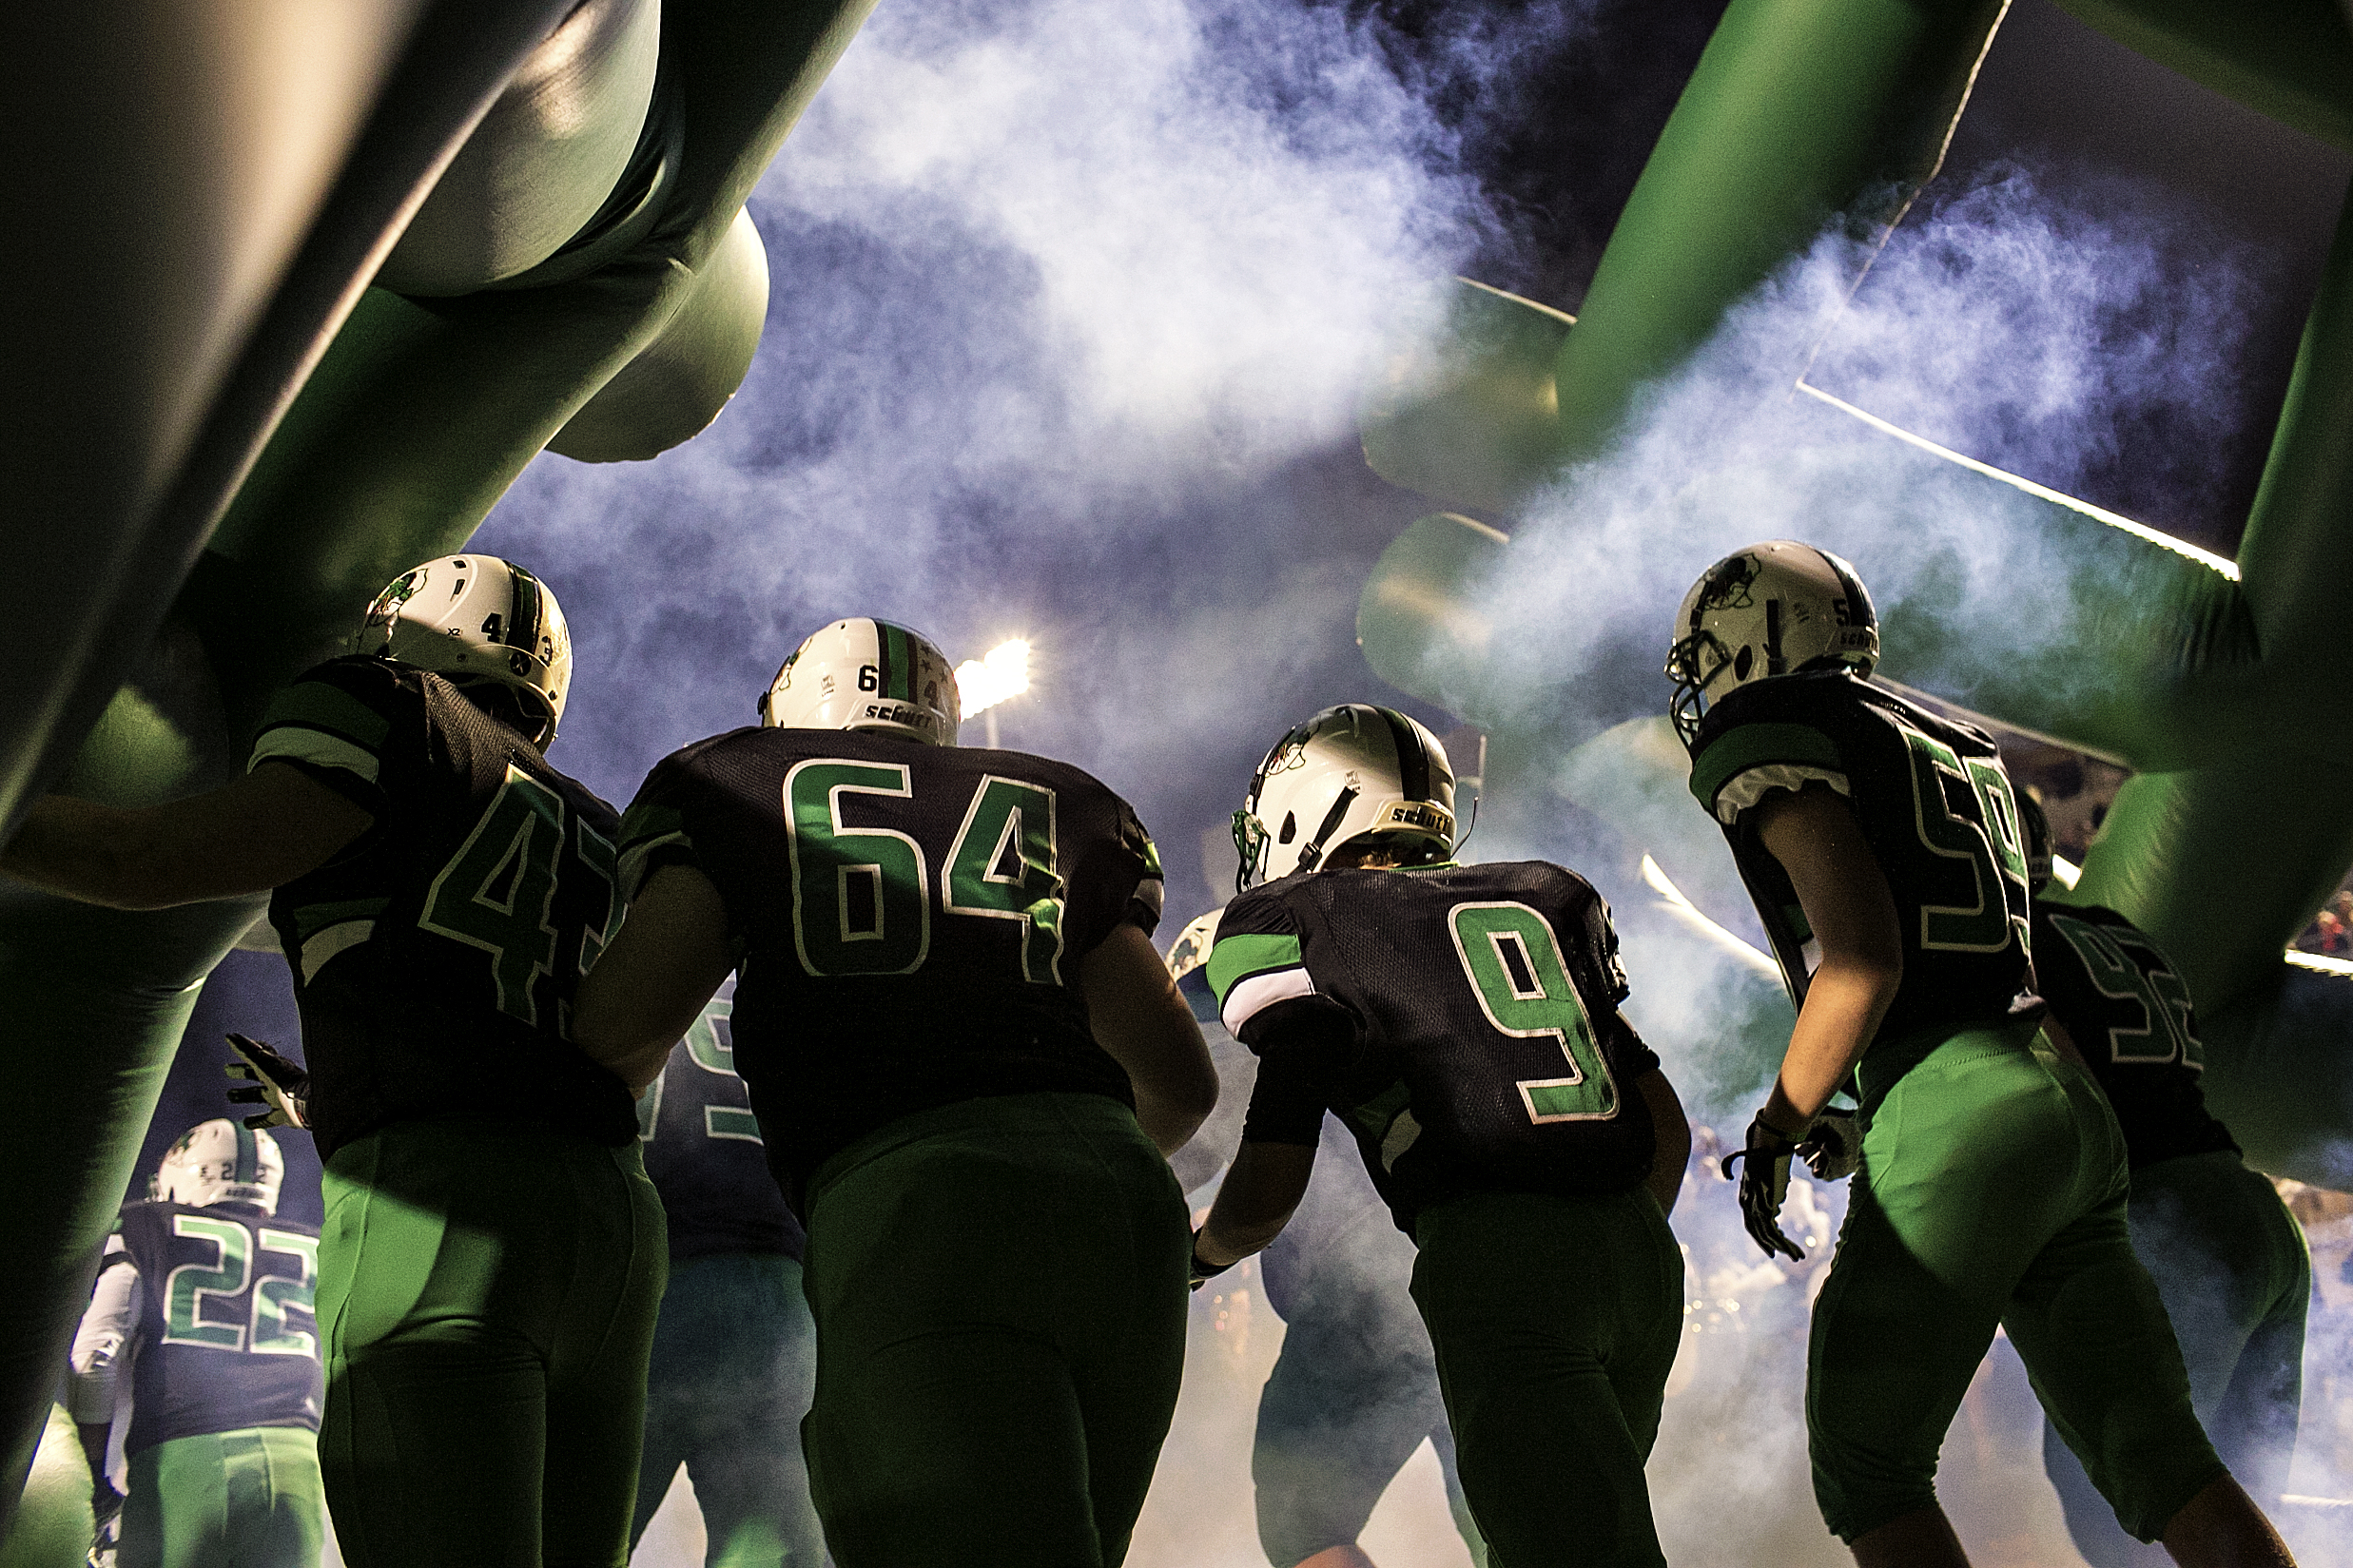 Southlake Carroll players Steven Stewart (43),Grant Stewart (64), Connor Lanham (9) and John Miscoll (59) run out of the tunnel prior to the second half of the Dragons' senior night game against Haltom on Oct. 31, 2014 at Dragon Stadium in Southlake, Texas. Southlake Carroll handily beat Haltom 62-0. The Carroll Dragons are one of the most successful programs in Texas high school football, having won eight state championships, which ties them with Celina High School for most in state history. The Dragons have seemingly been a powerhouse since the school's establishment in 1965, but their statewide fame did not arrive until the 1980's when, led by legendary coach Bob Ledbetter, they dominated the 3A classification with 72 consecutive regular season victories and three state titles in 1988, 1992 and 1993.